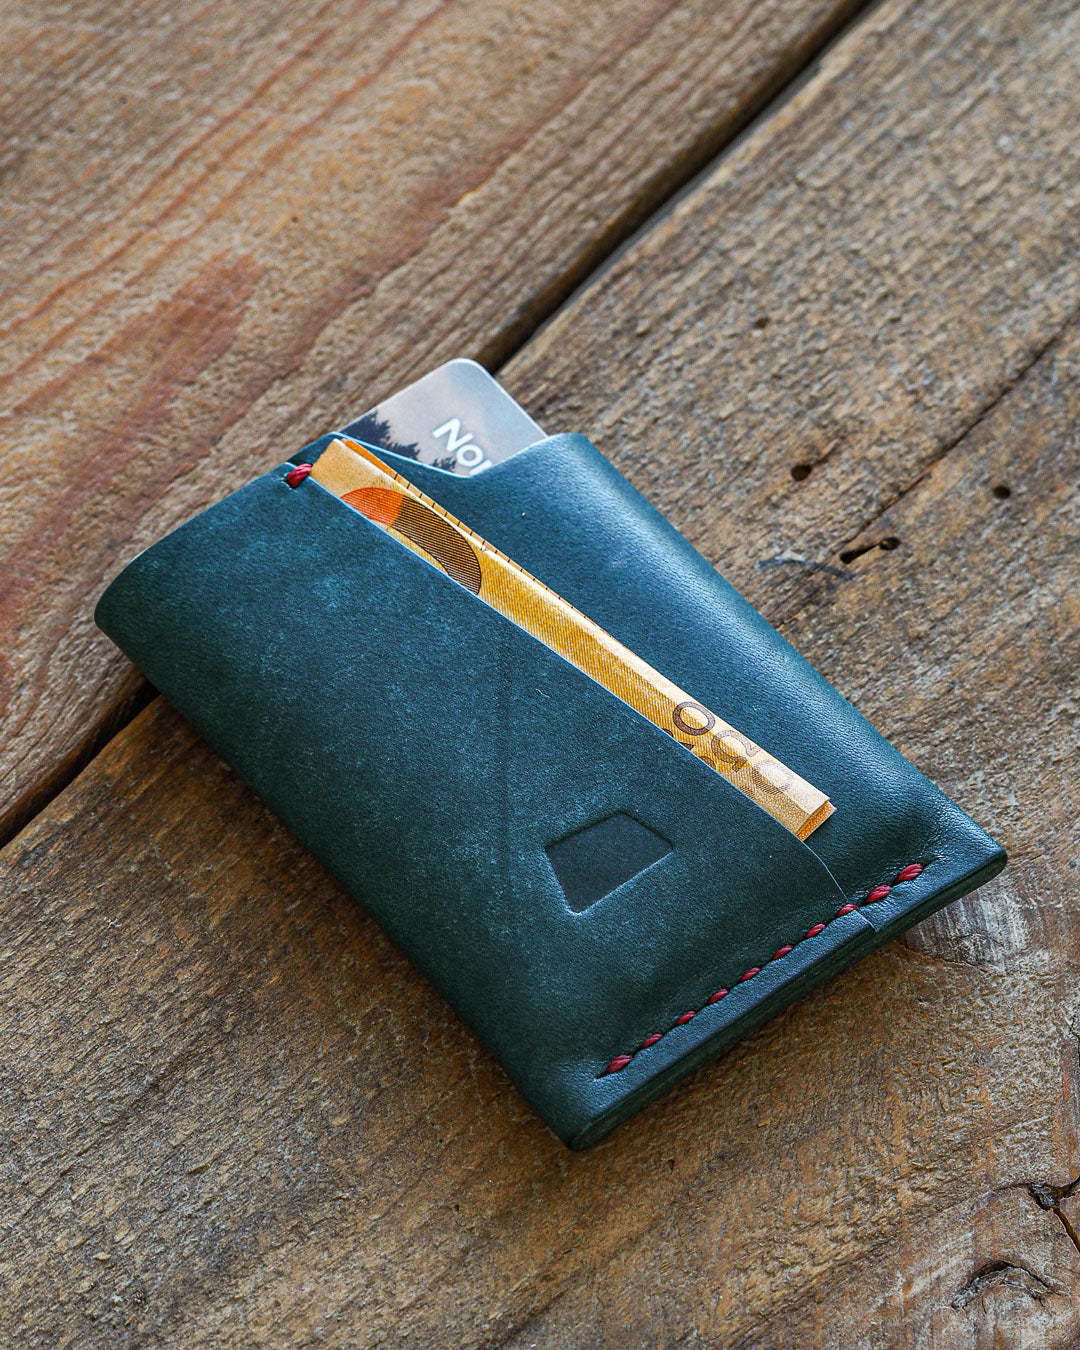 Luava handmade leather wallet handcrafted card holder wrap cardholder made in finland vortex maya turquoise front in use angle